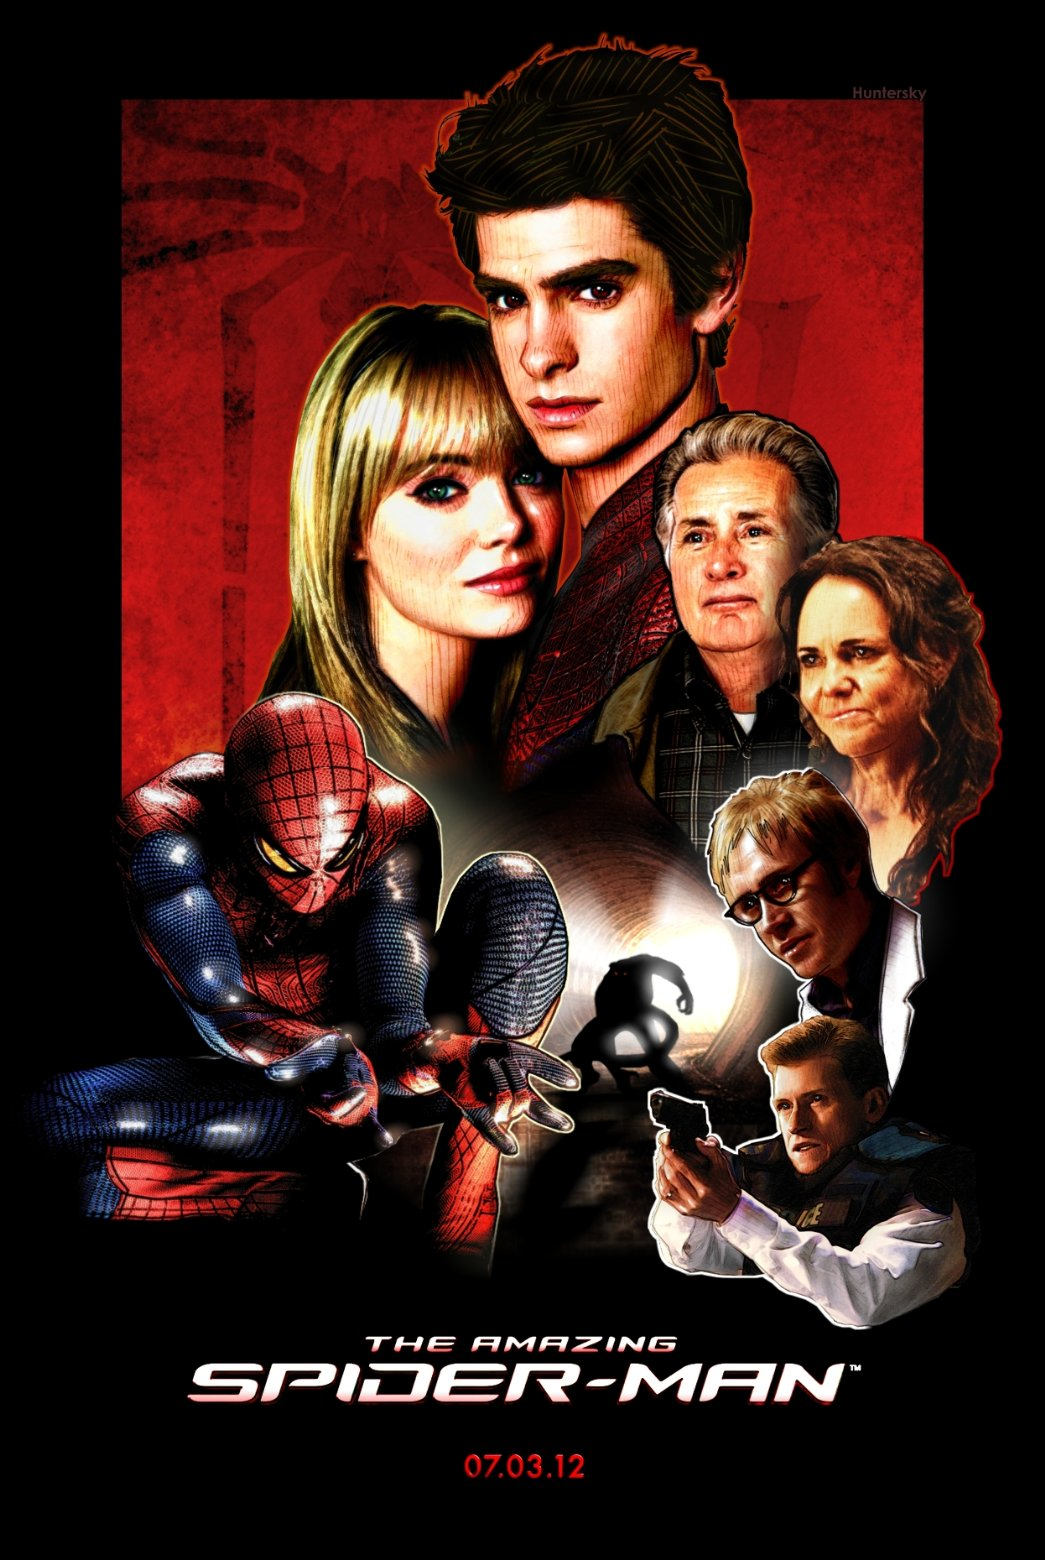 The Amazing Spider Man Huntersky Movie Poster Kirby Dynamics